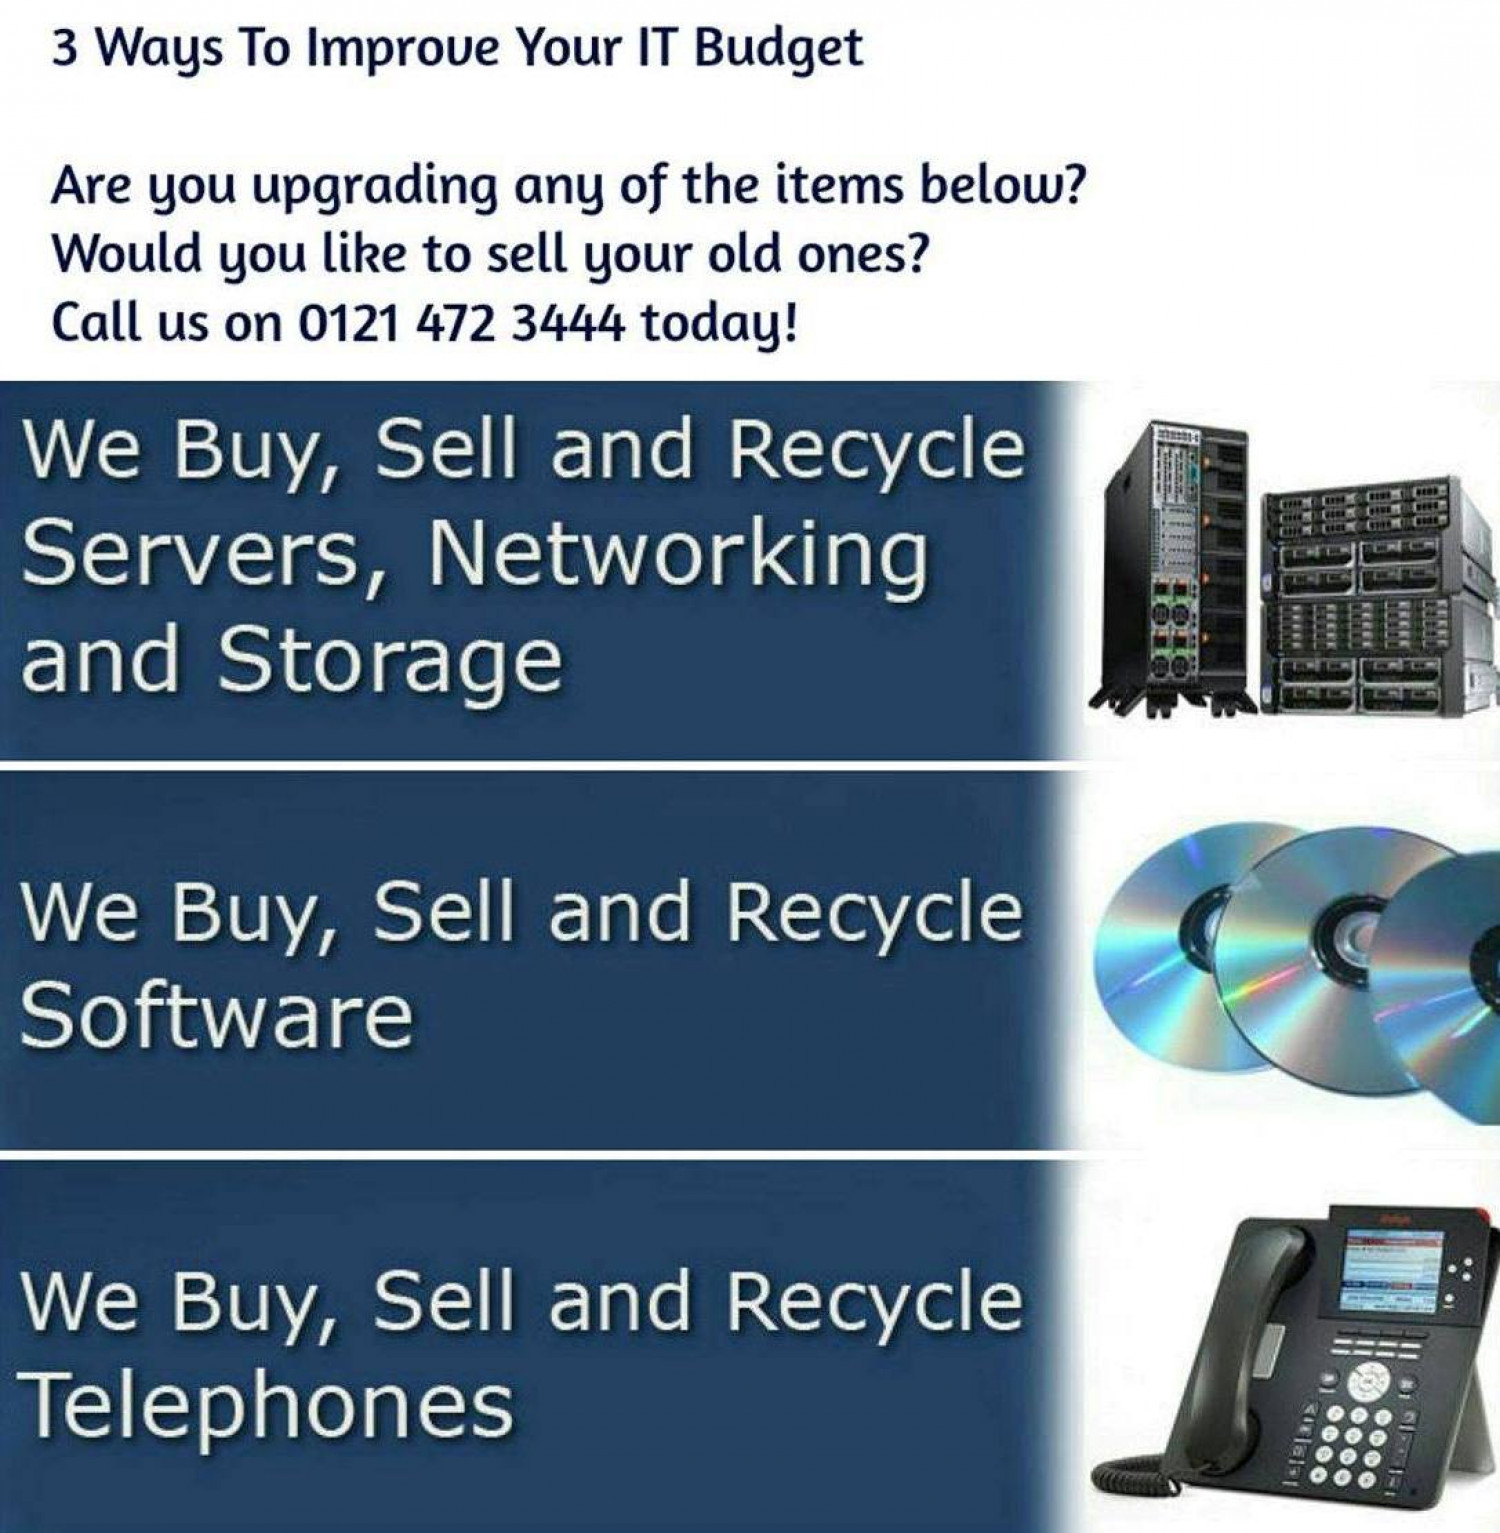 3 Ways To Improve Your IT Budget Infographic